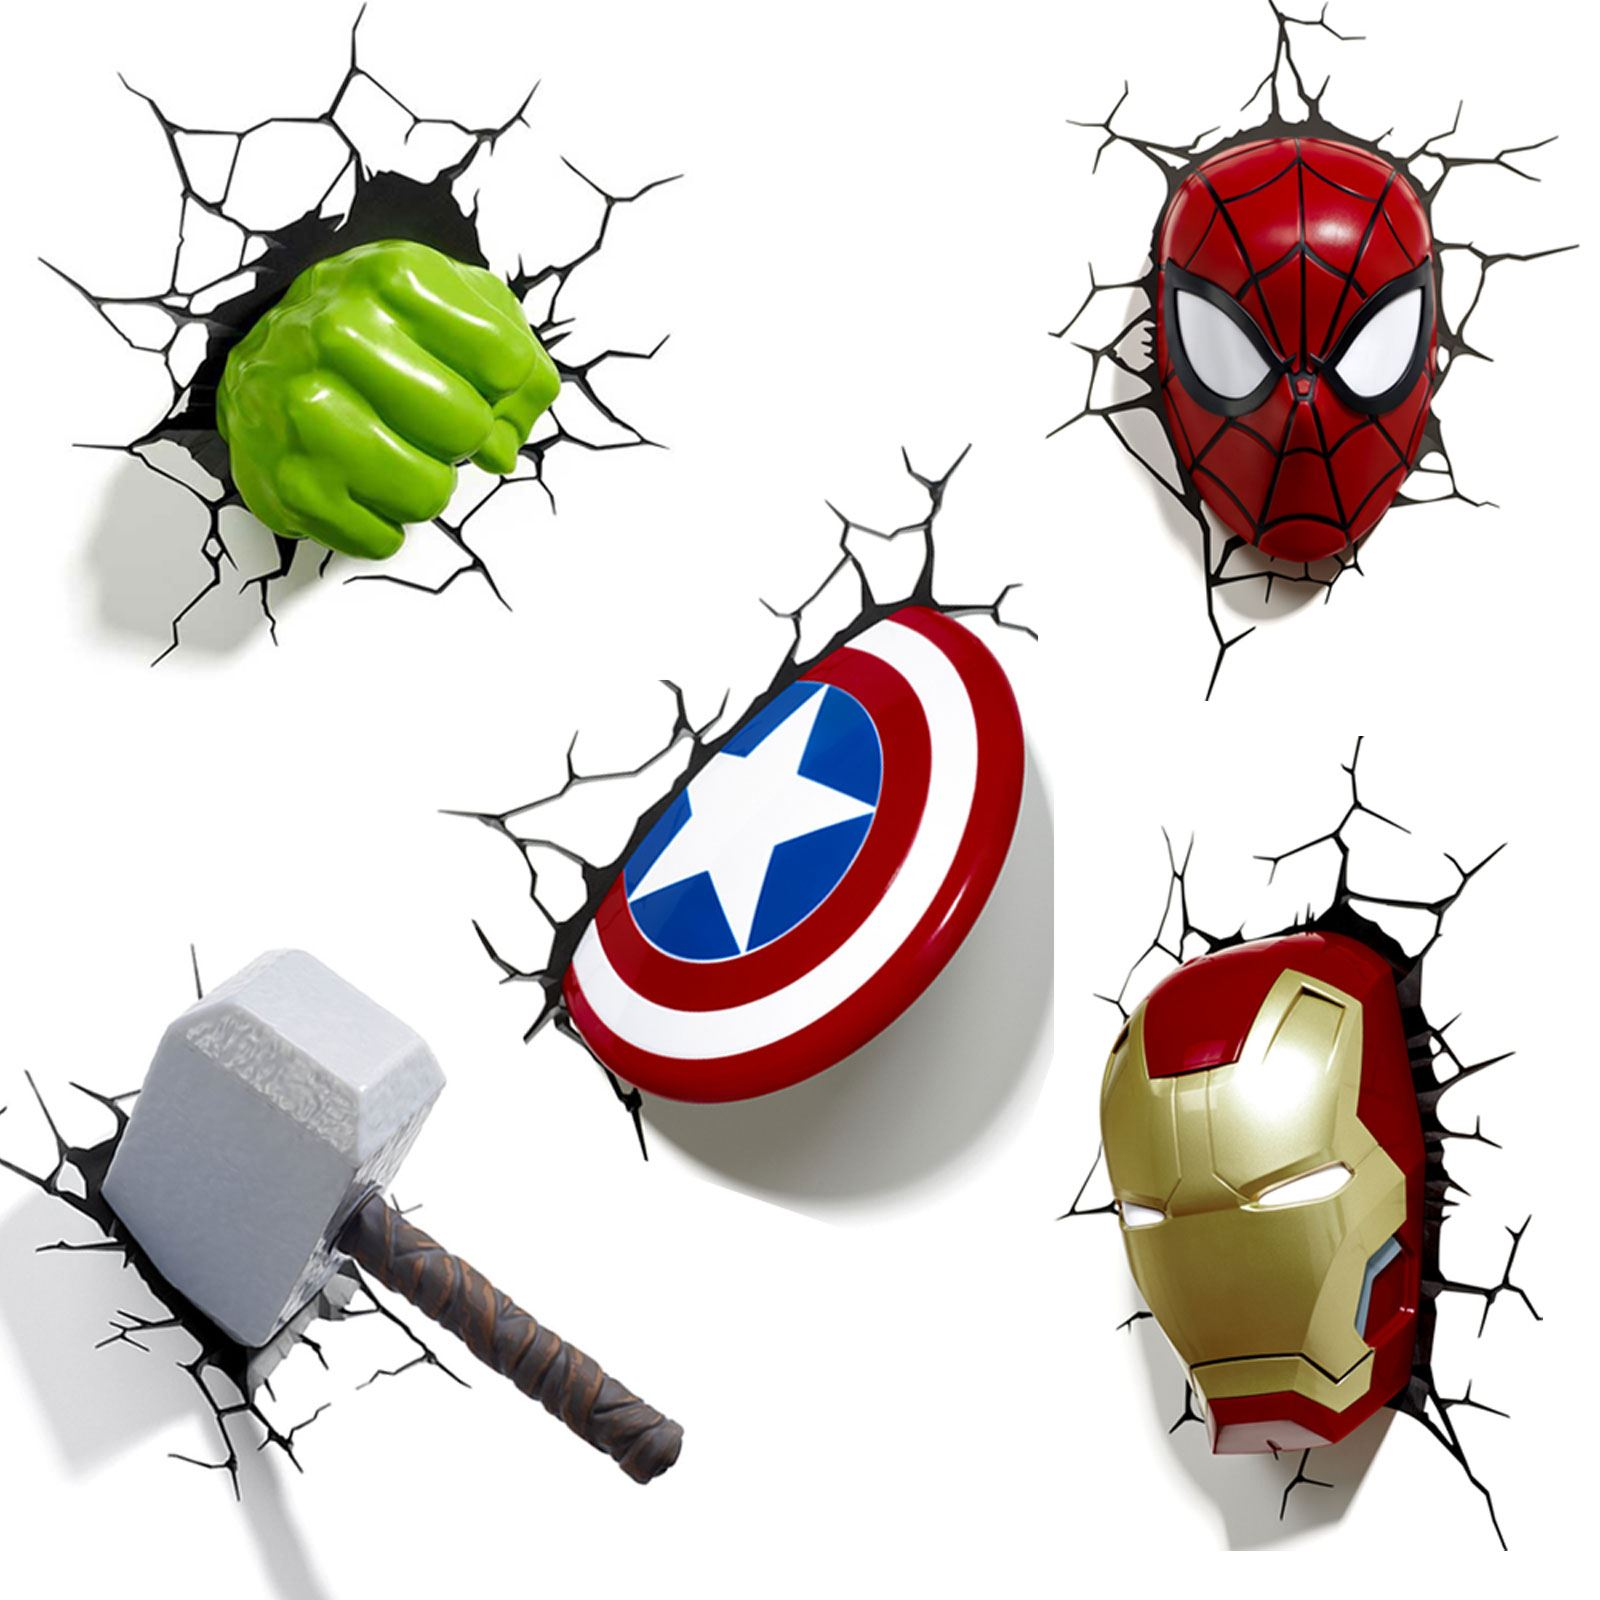 Marvel Lights On Wall : MARVEL AVENGERS 3D WALL LIGHT - HULK, IRON MAN, CAPTAIN AMERICA, THOR, SPIDERMAN eBay